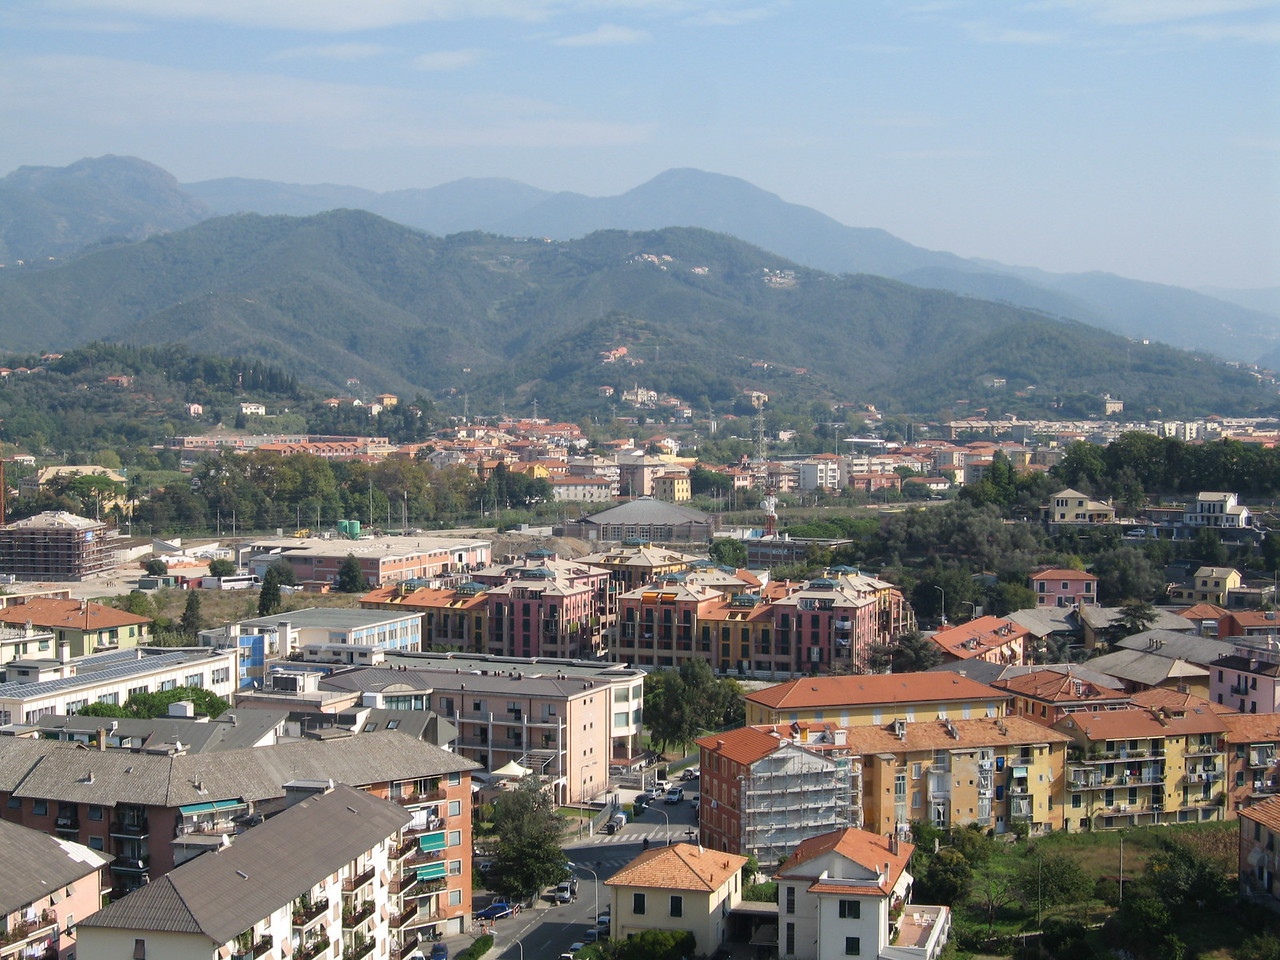 View of Sestri Levante City from Hotel Vis a' Vis